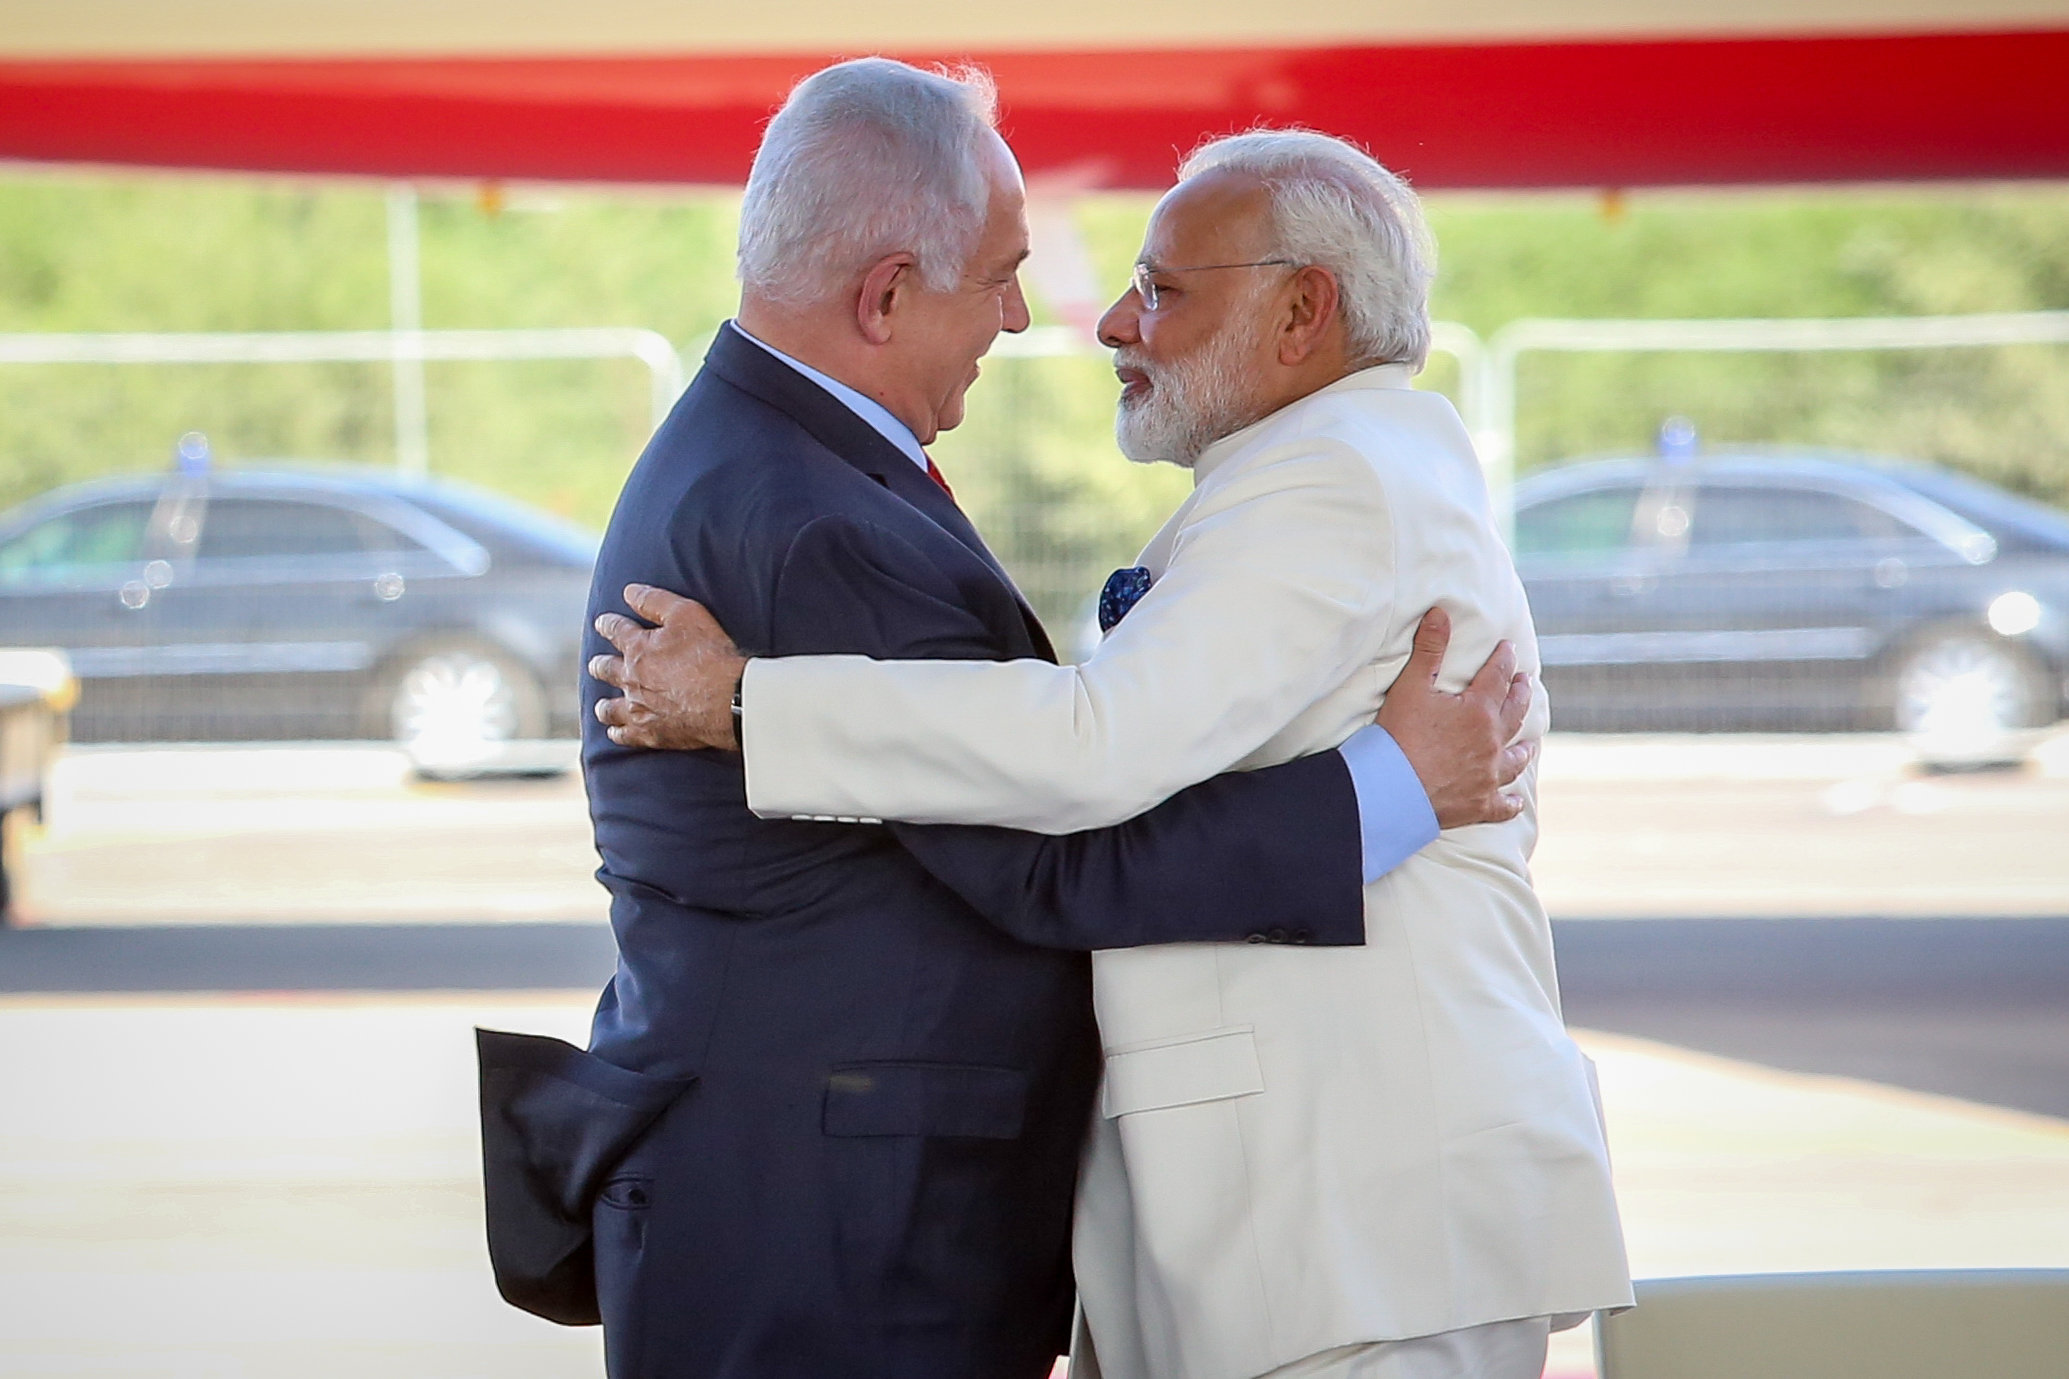 Israeli Prime Minister Benjamin Netanyahu with his Indian counterpart Narendra Modi at a farewell ceremony in his honour at Ben Gurion International Airport in Tel Aviv on July 4, 2017. (Shlomi Cohen/Flash90)